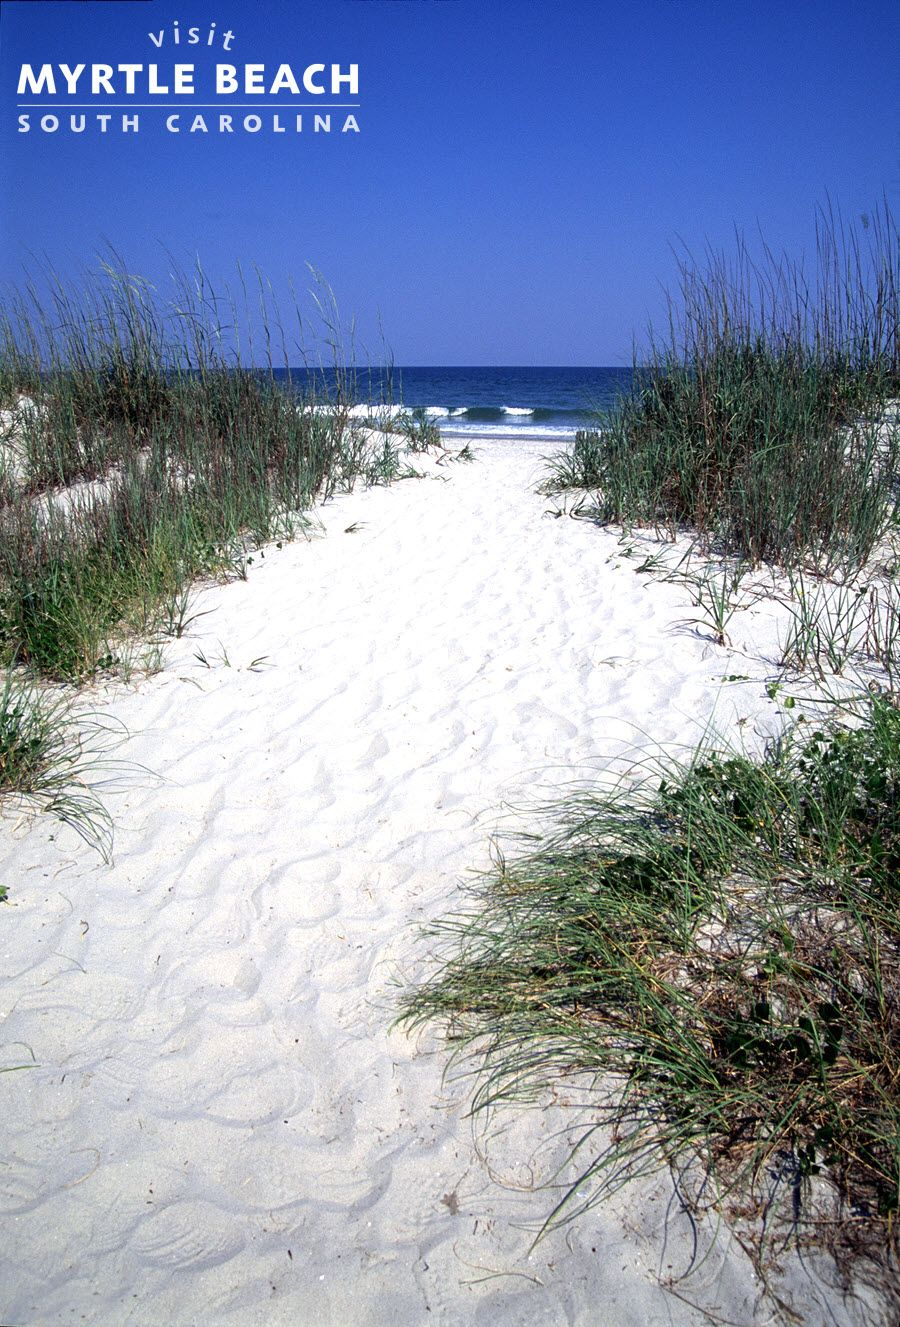 Myrtle Beach South Carolina Vacation Trips Dream Vacations Places To Travel